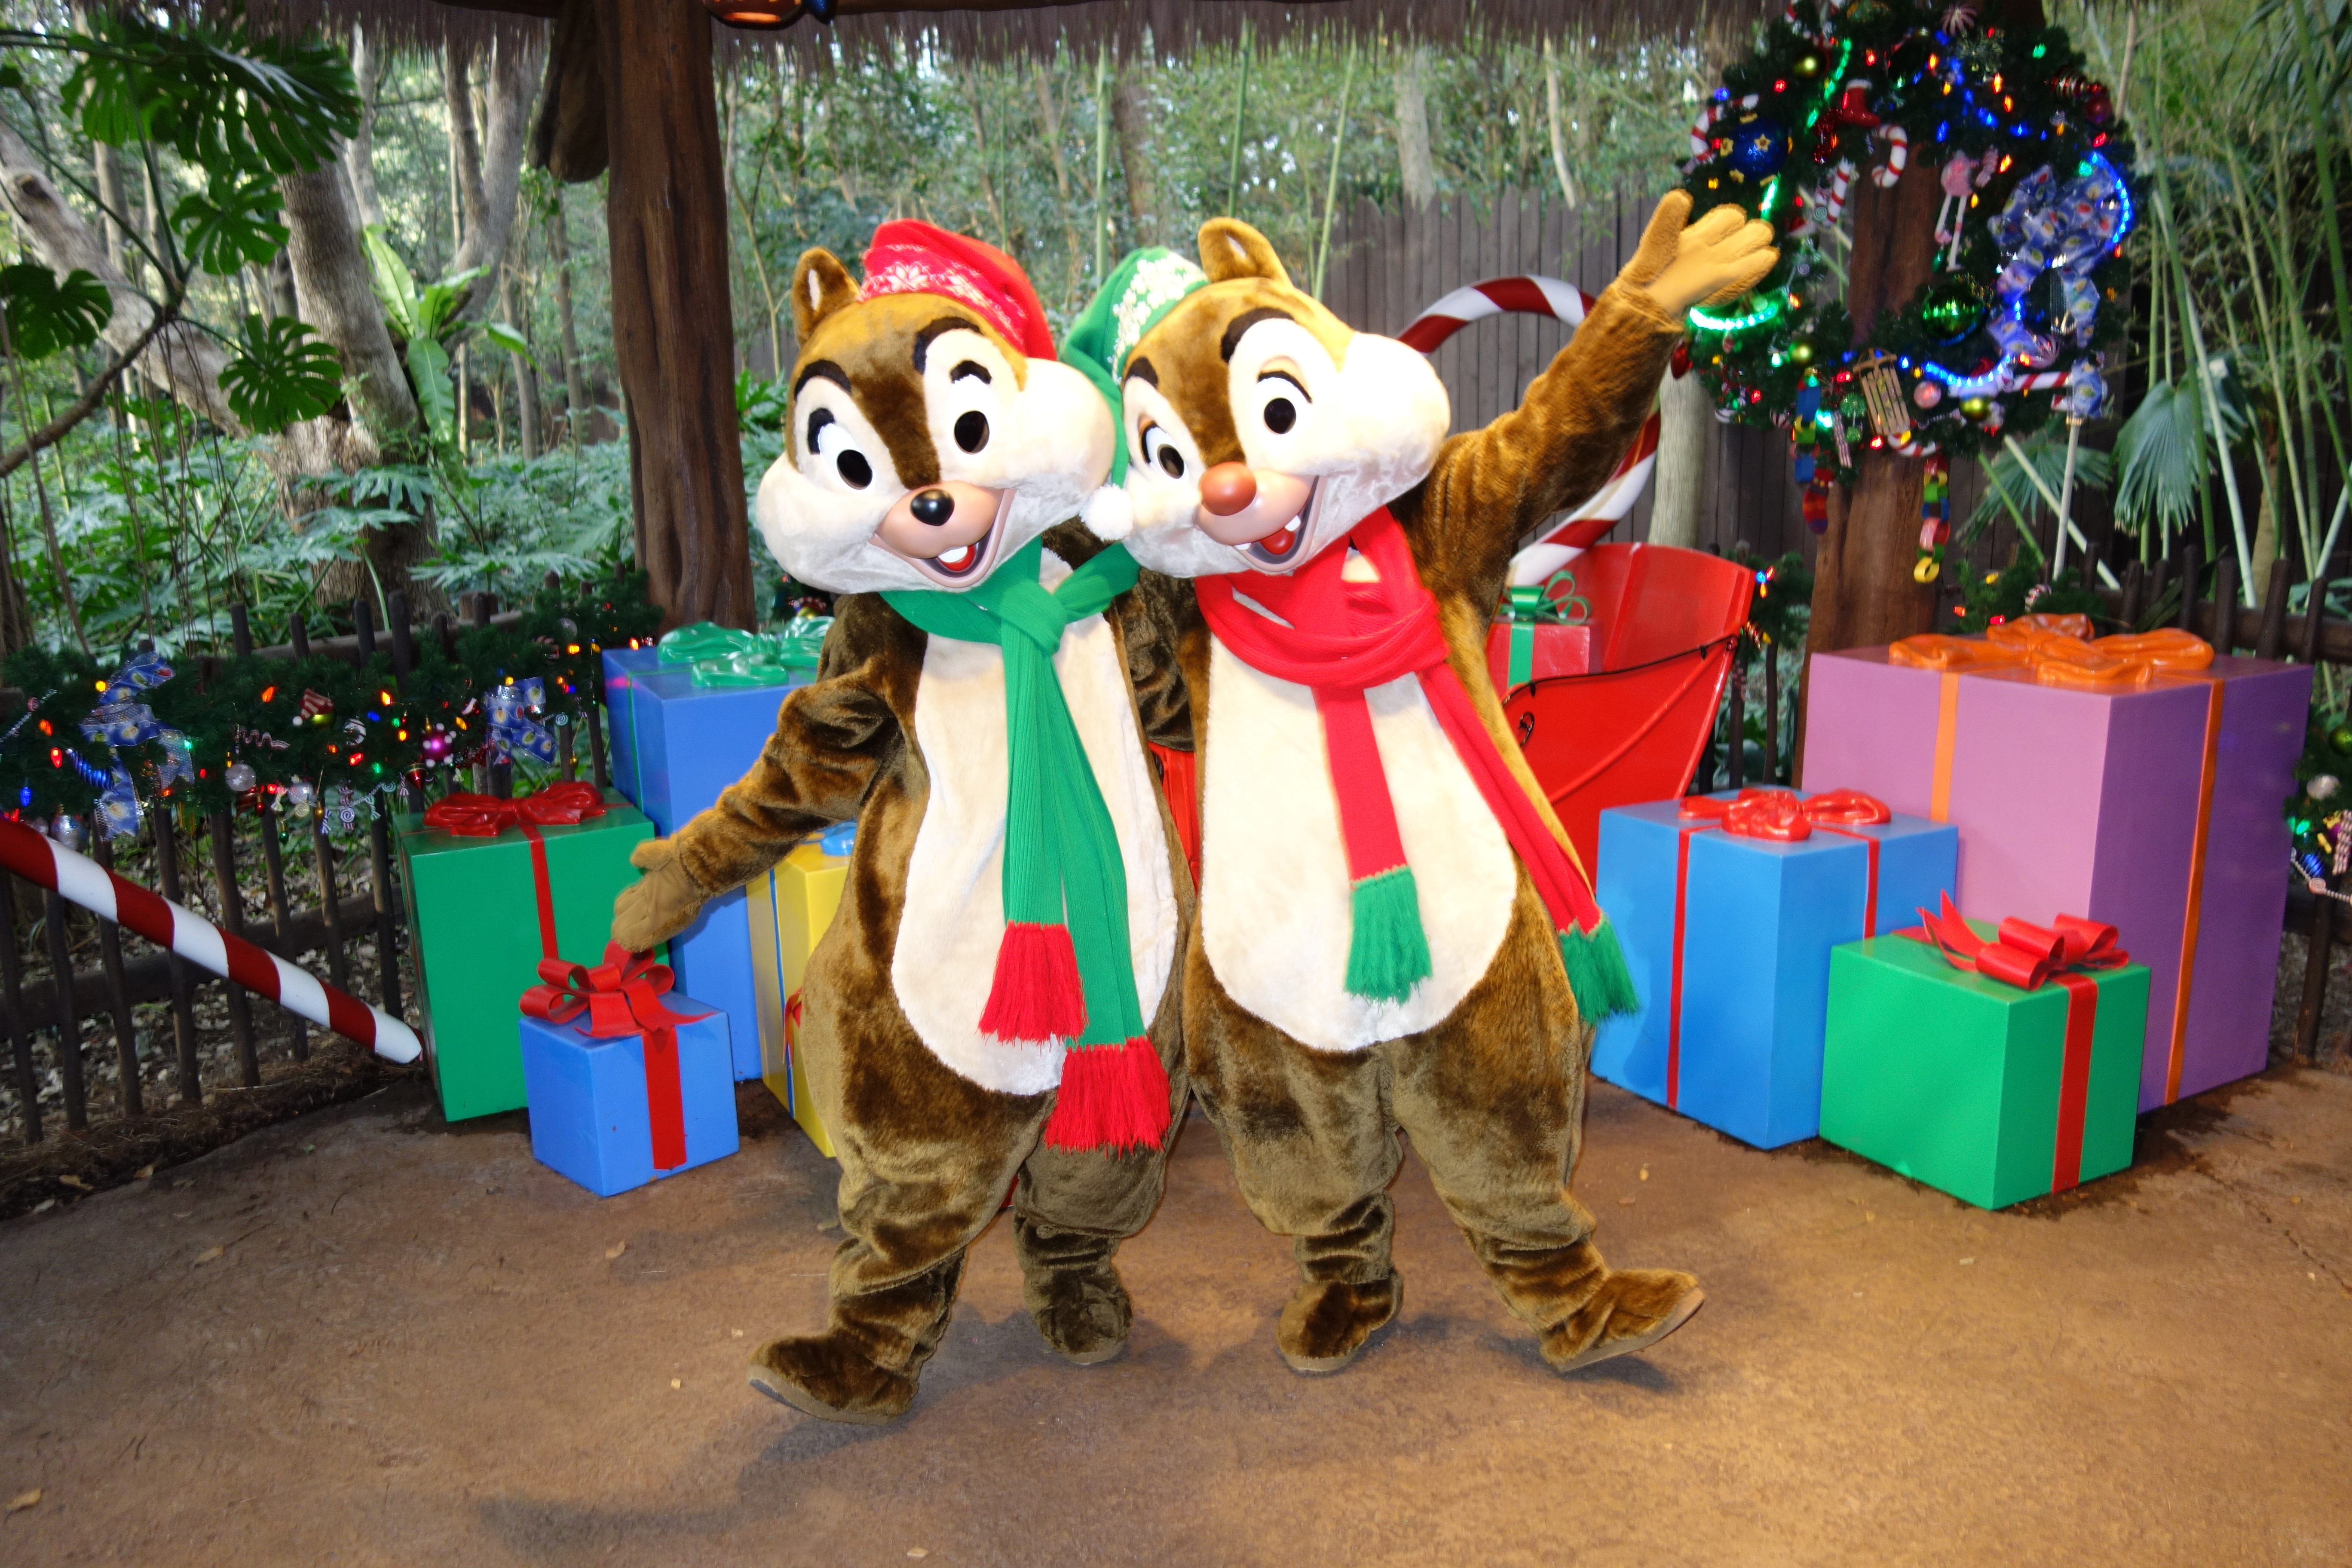 Chip N Dale Kennythepirate S Unofficial Guide To Disney World